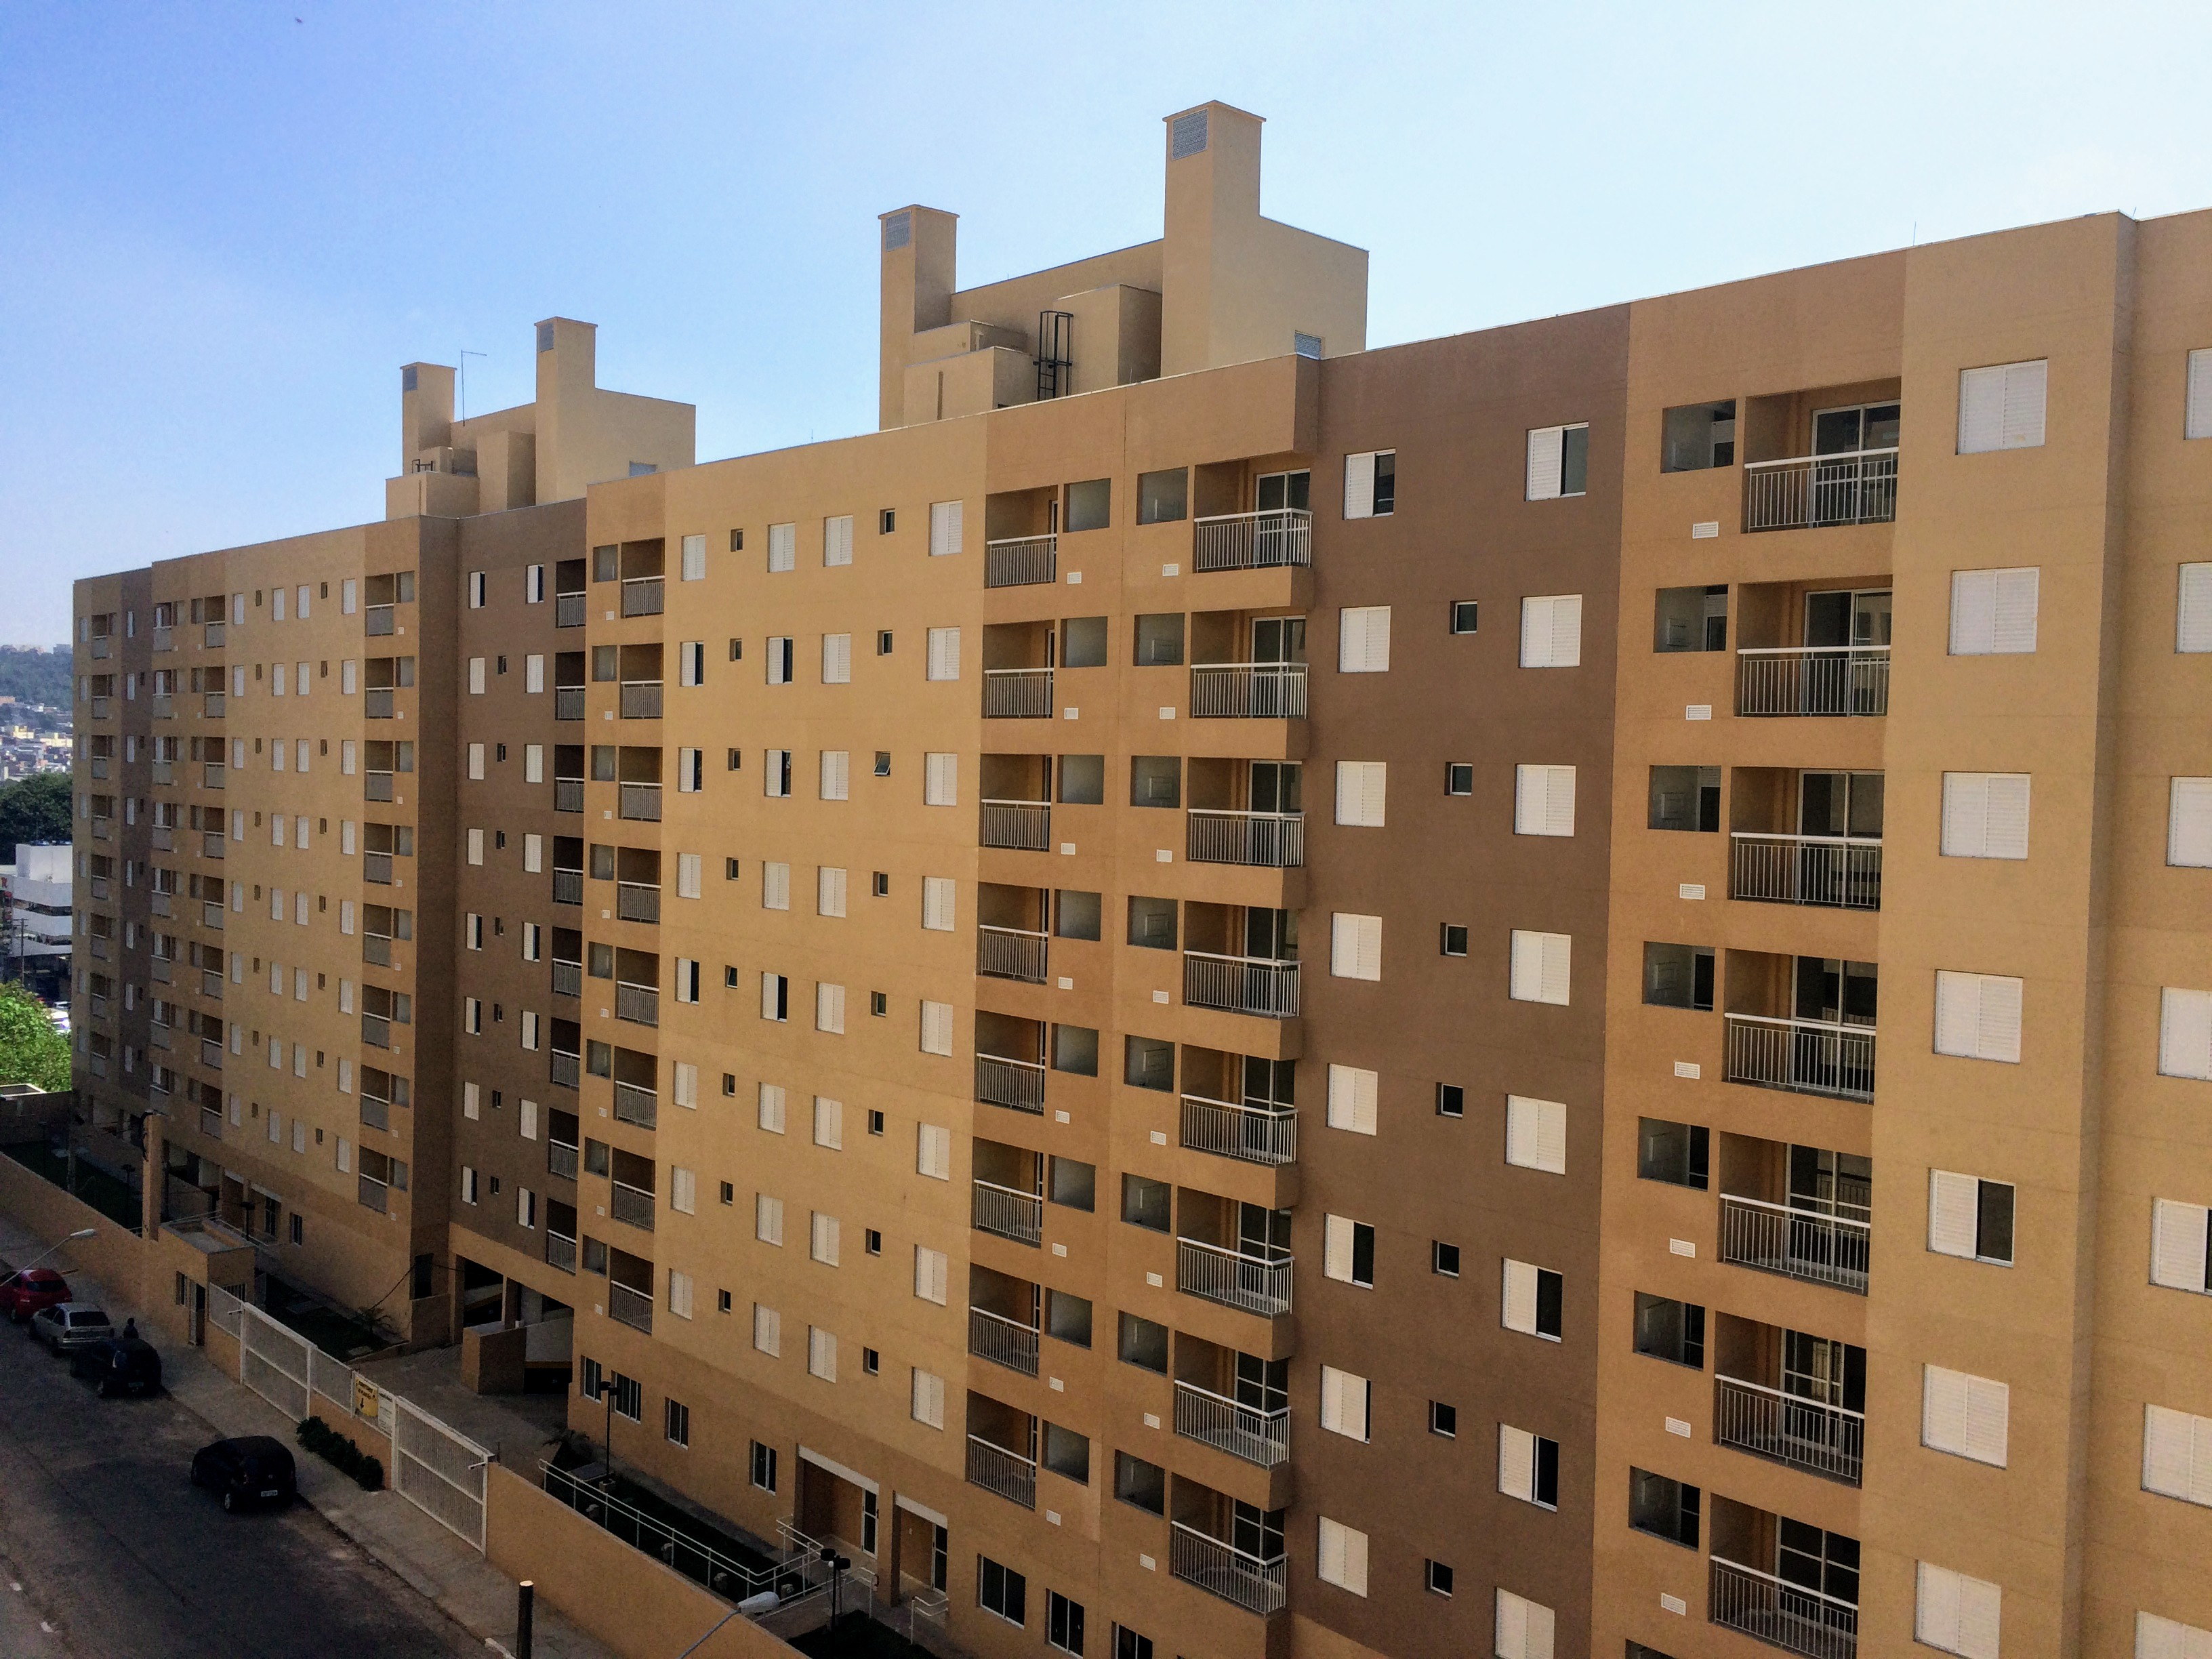 FAMILIA CASABLANCA RESIDENTIAL PROJECT IN SAO PAULO (BRAZIL) - 143 apartments